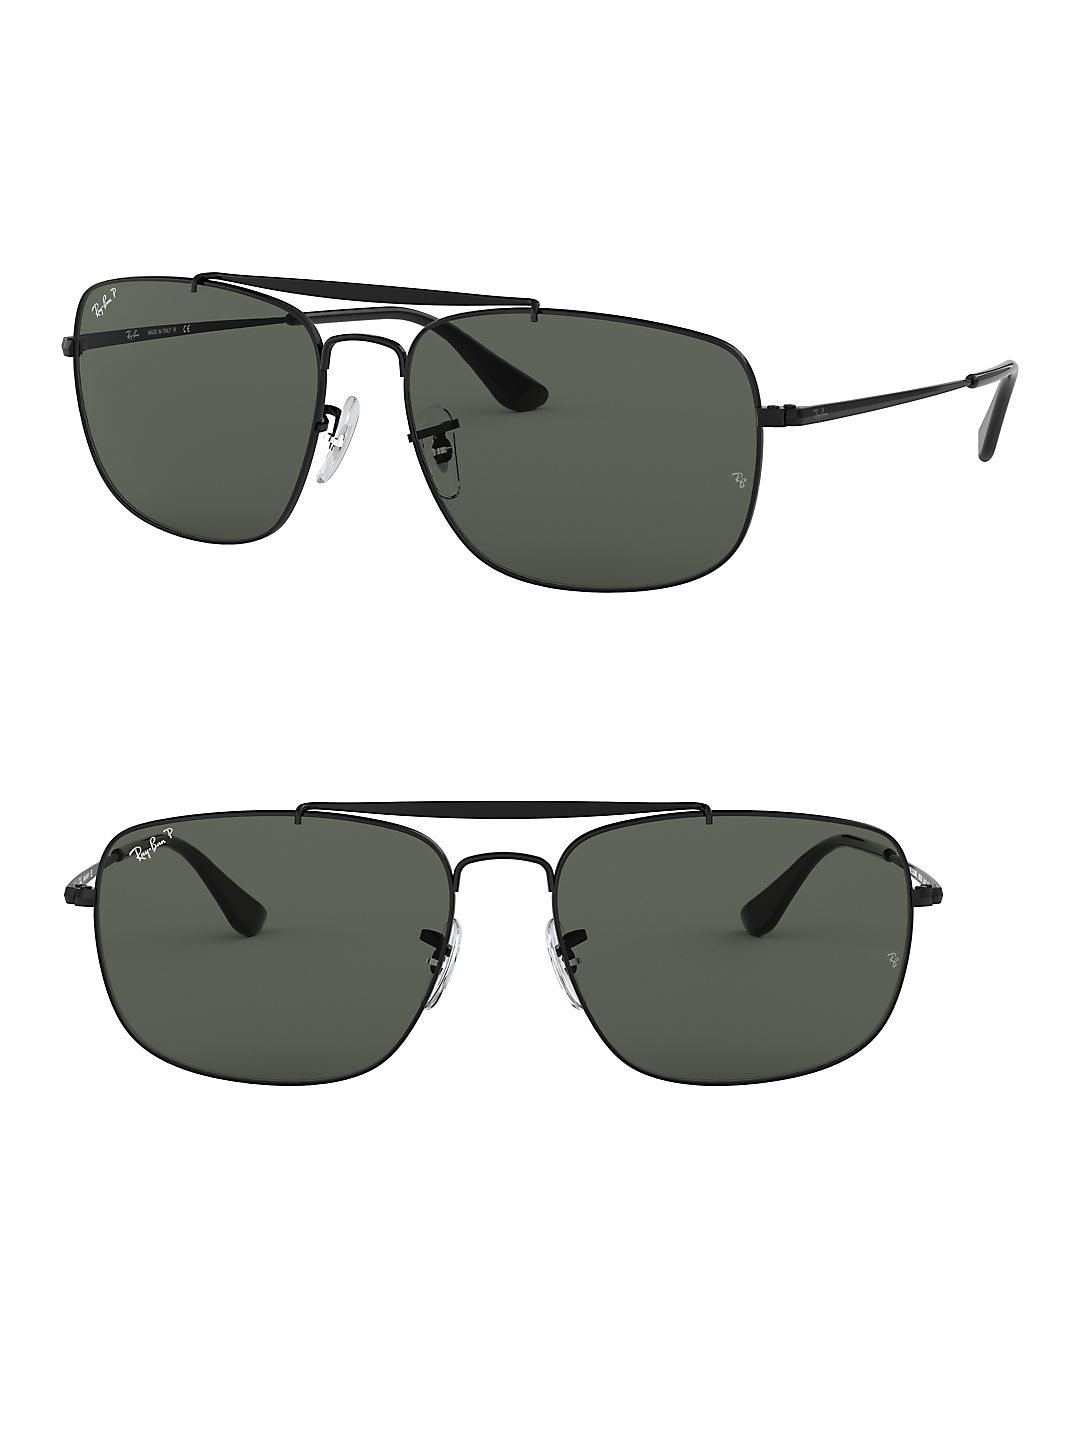 Ray-Ban Men's RB3560 Colonel Sunglasses, 61mm